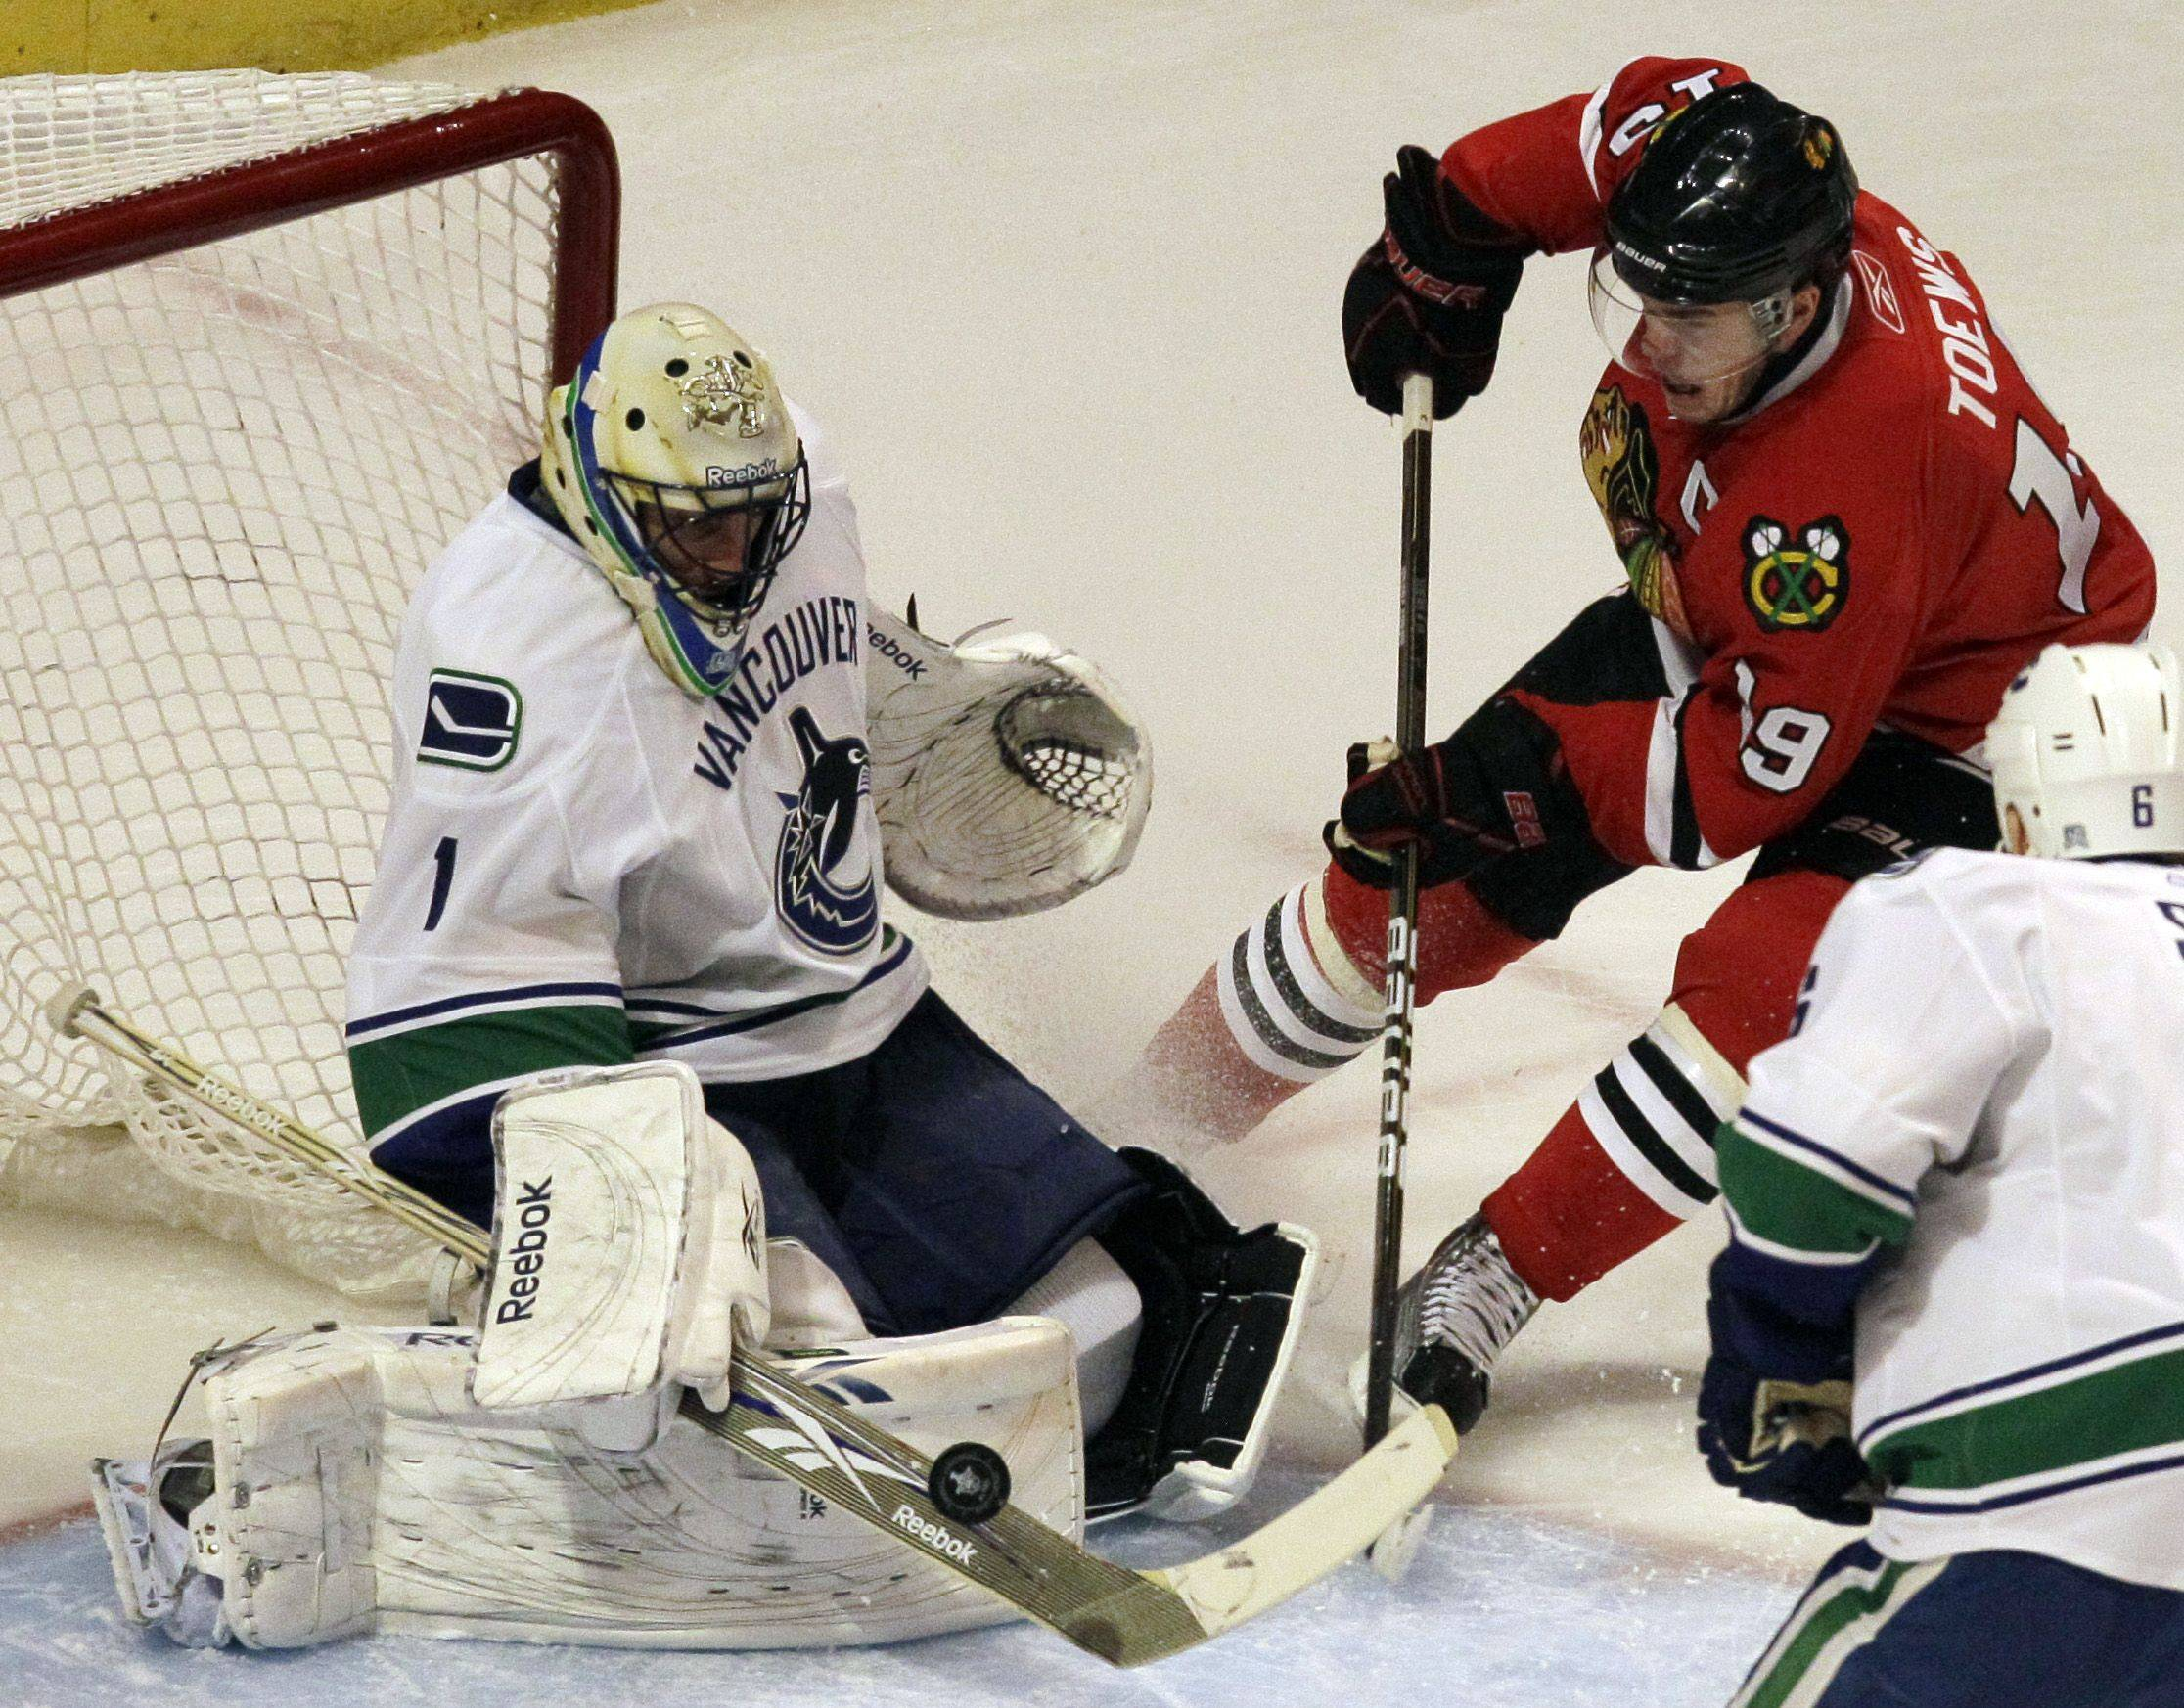 Vancouver Canucks goalie Roberto Luongo, left, blocks a shot by Chicago Blackhawks center Jonathan Toews during the first period of Game 3 of an NHL hockey Stanley Cup playoff series Chicago, Sunday.